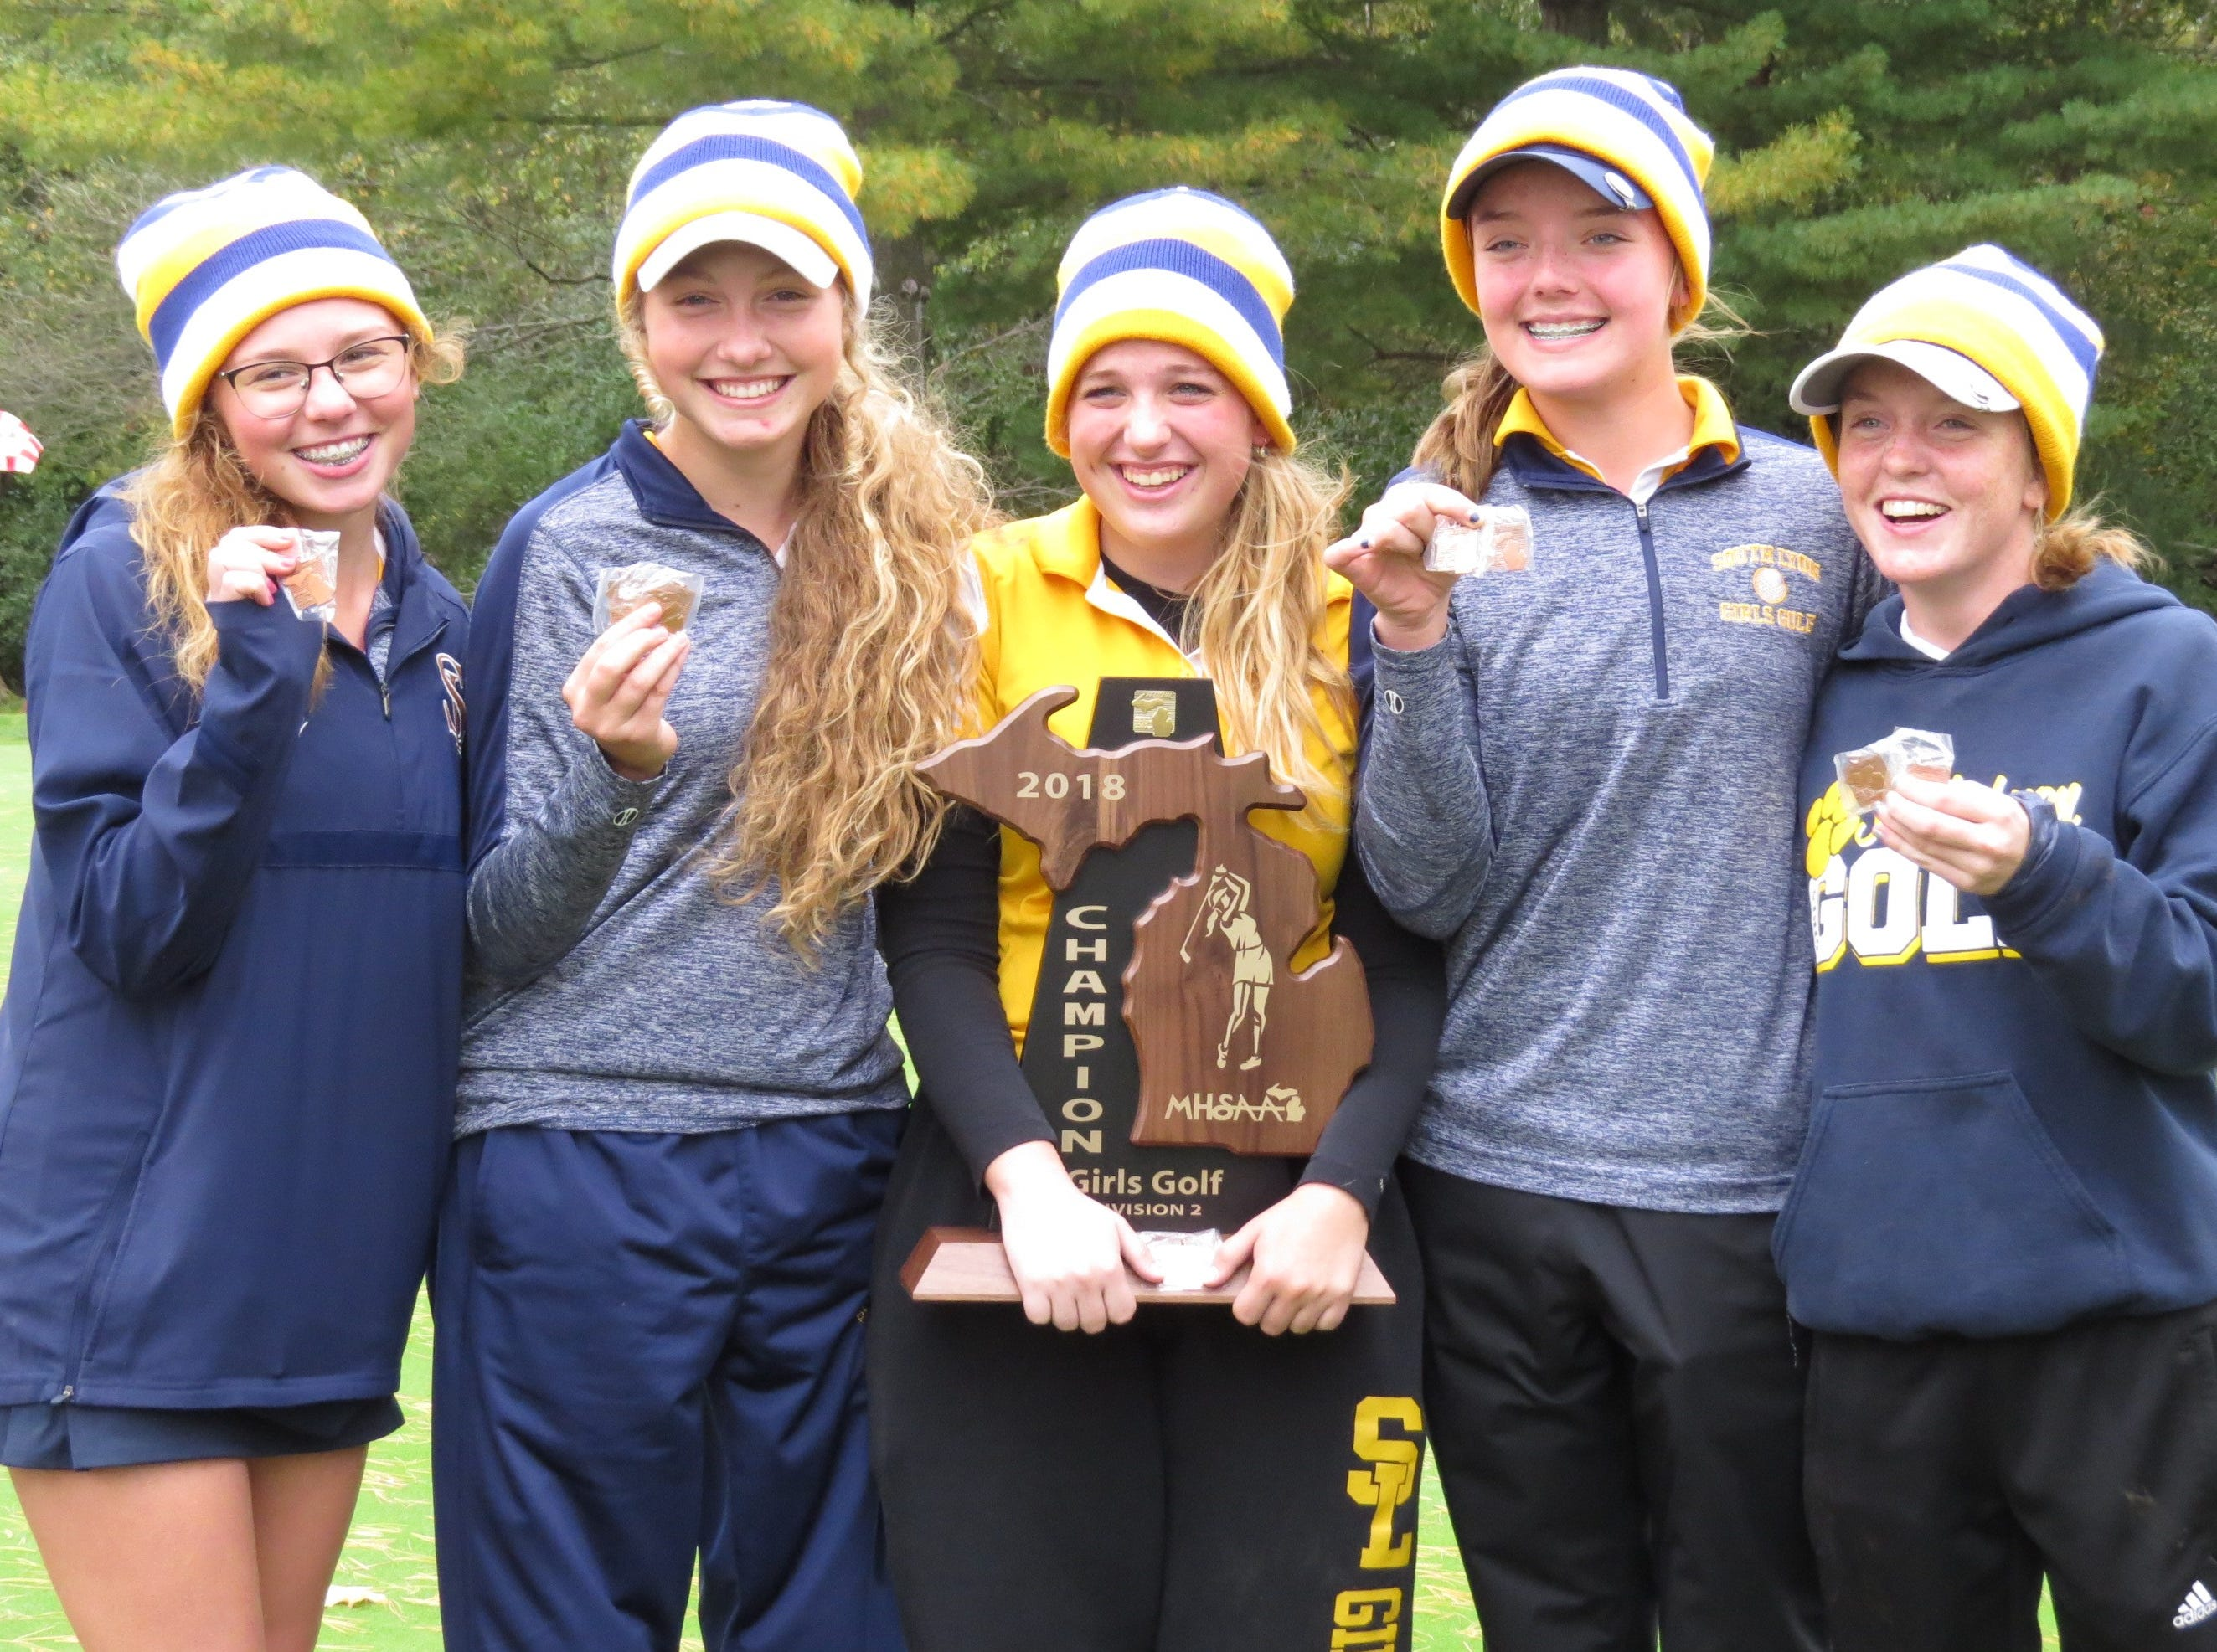 South Lyon has another strong year on the links